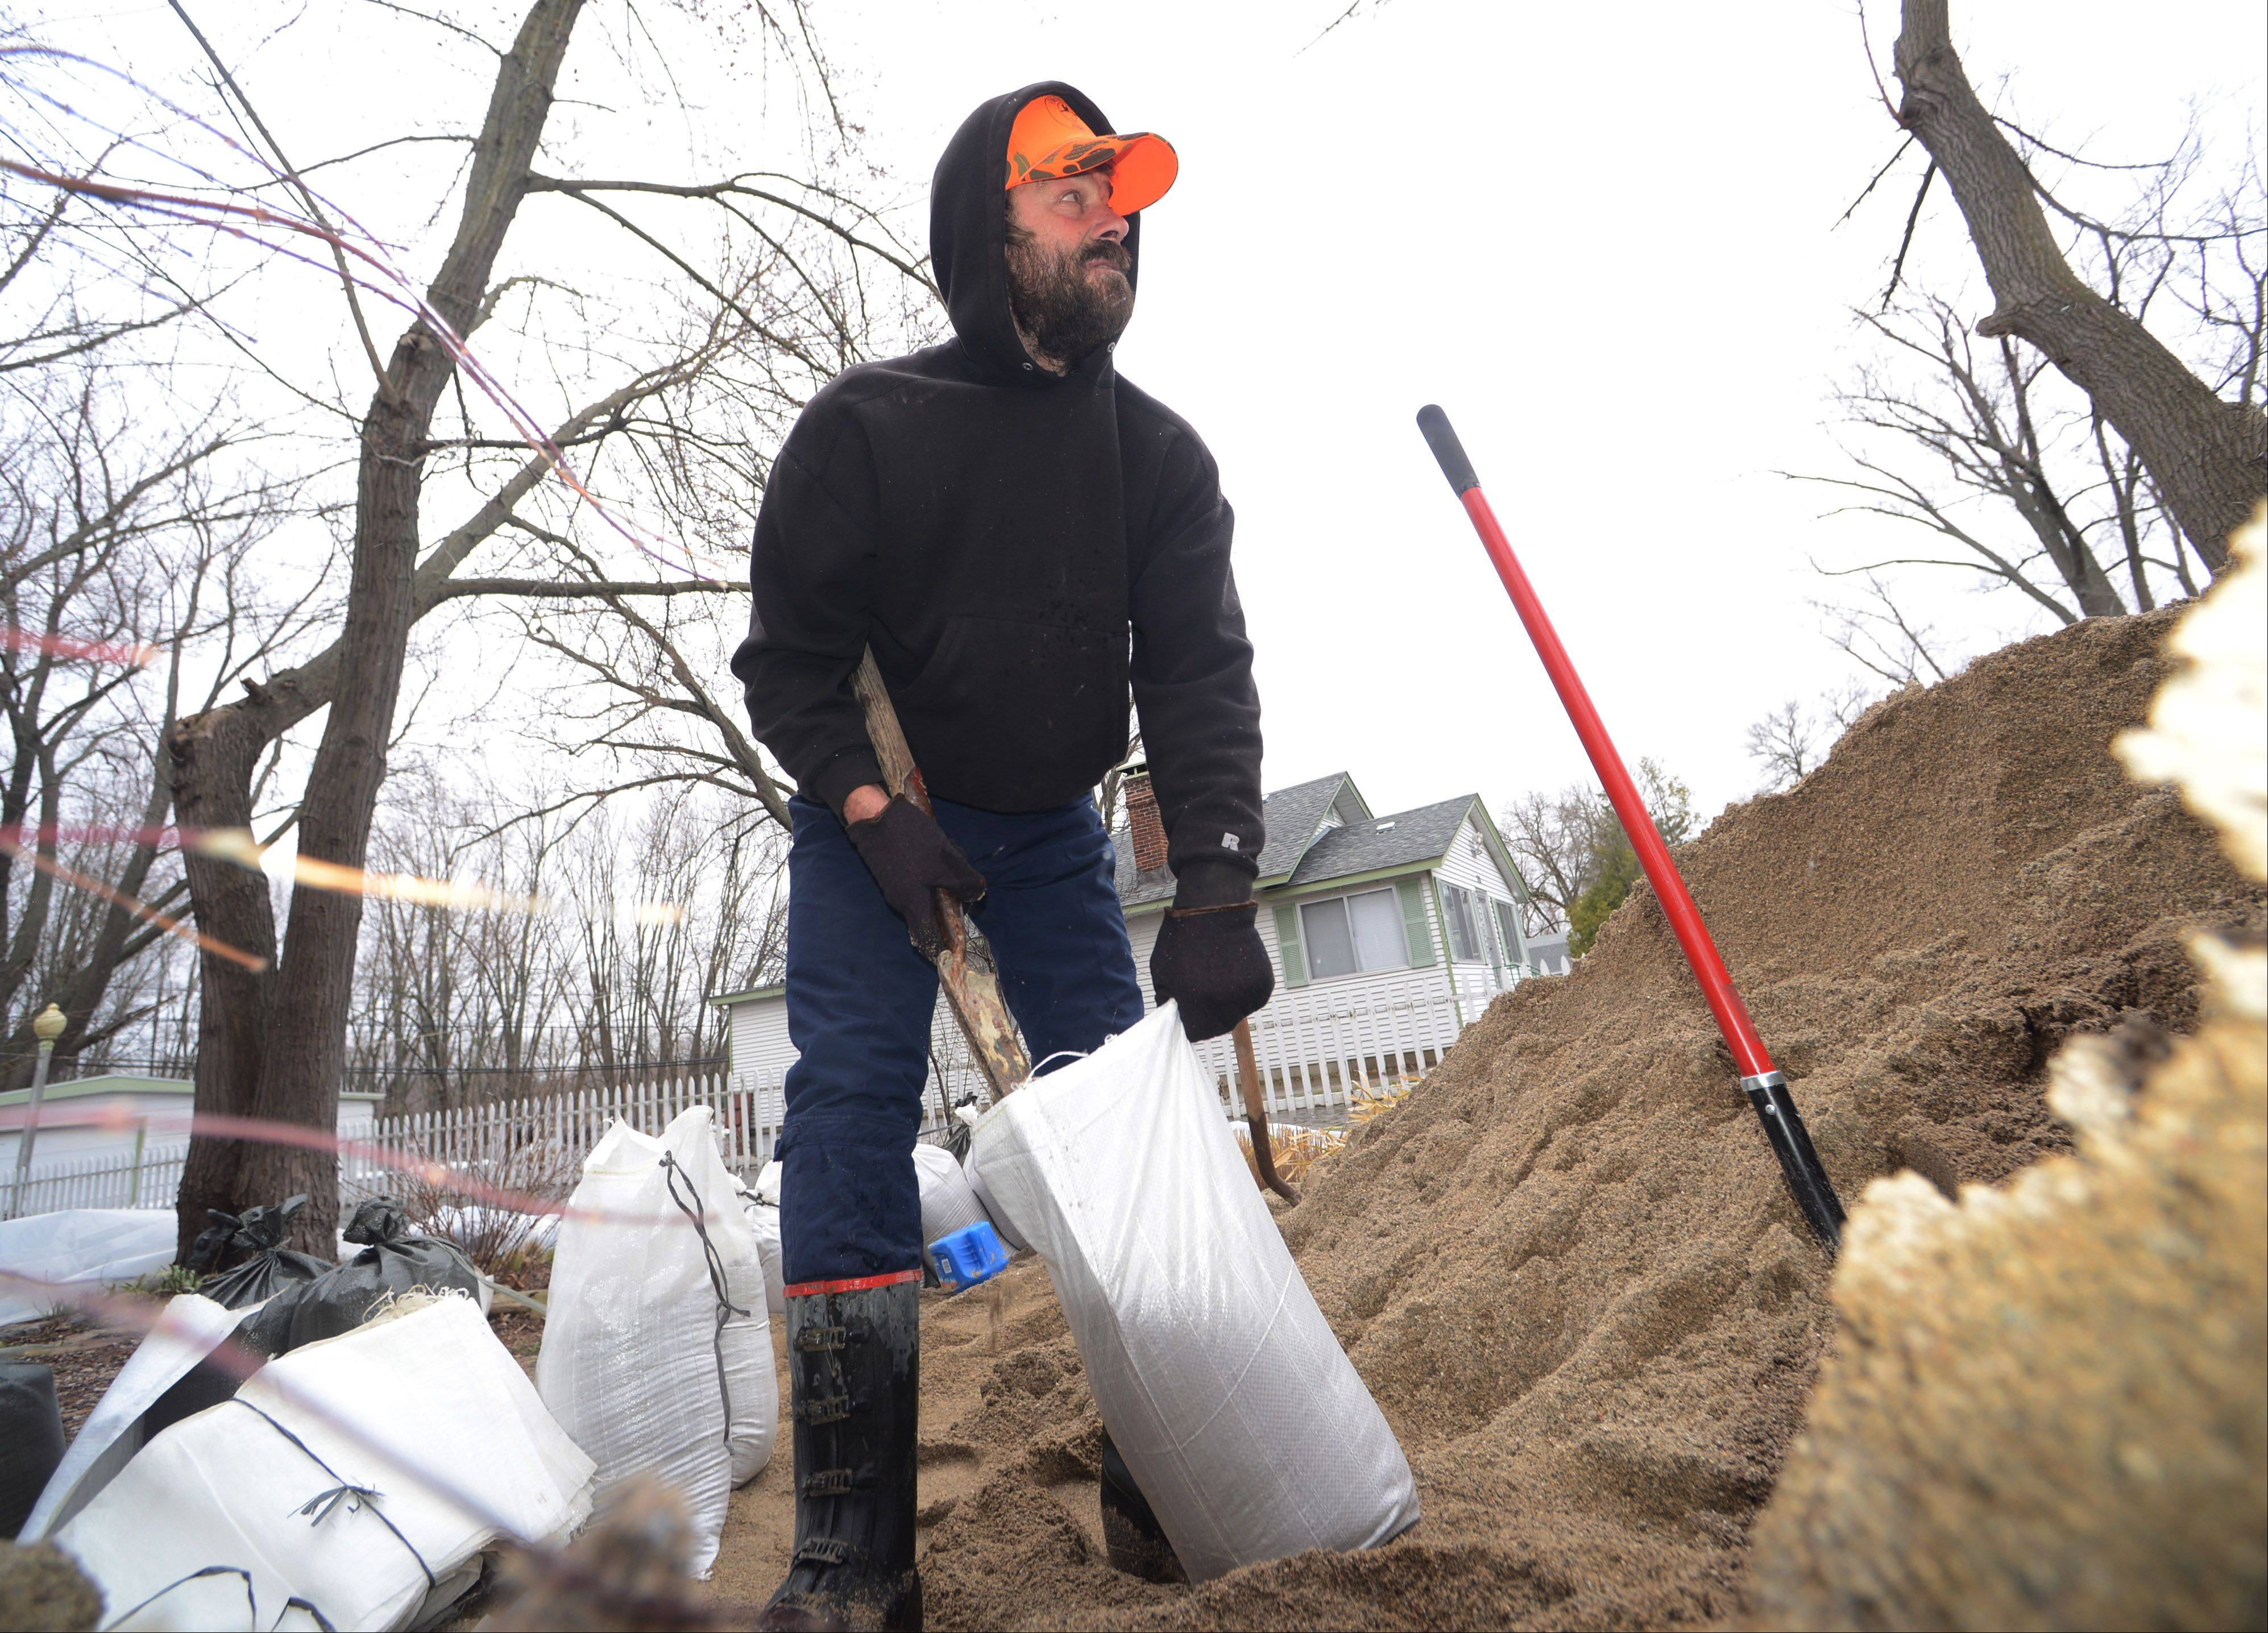 Paul Krueger fills sandbags at his Rawson Bridge Road home in Nunda Township near Cary Friday morning. Rising Fox River waters has closed the road that crosses over the Fox River.